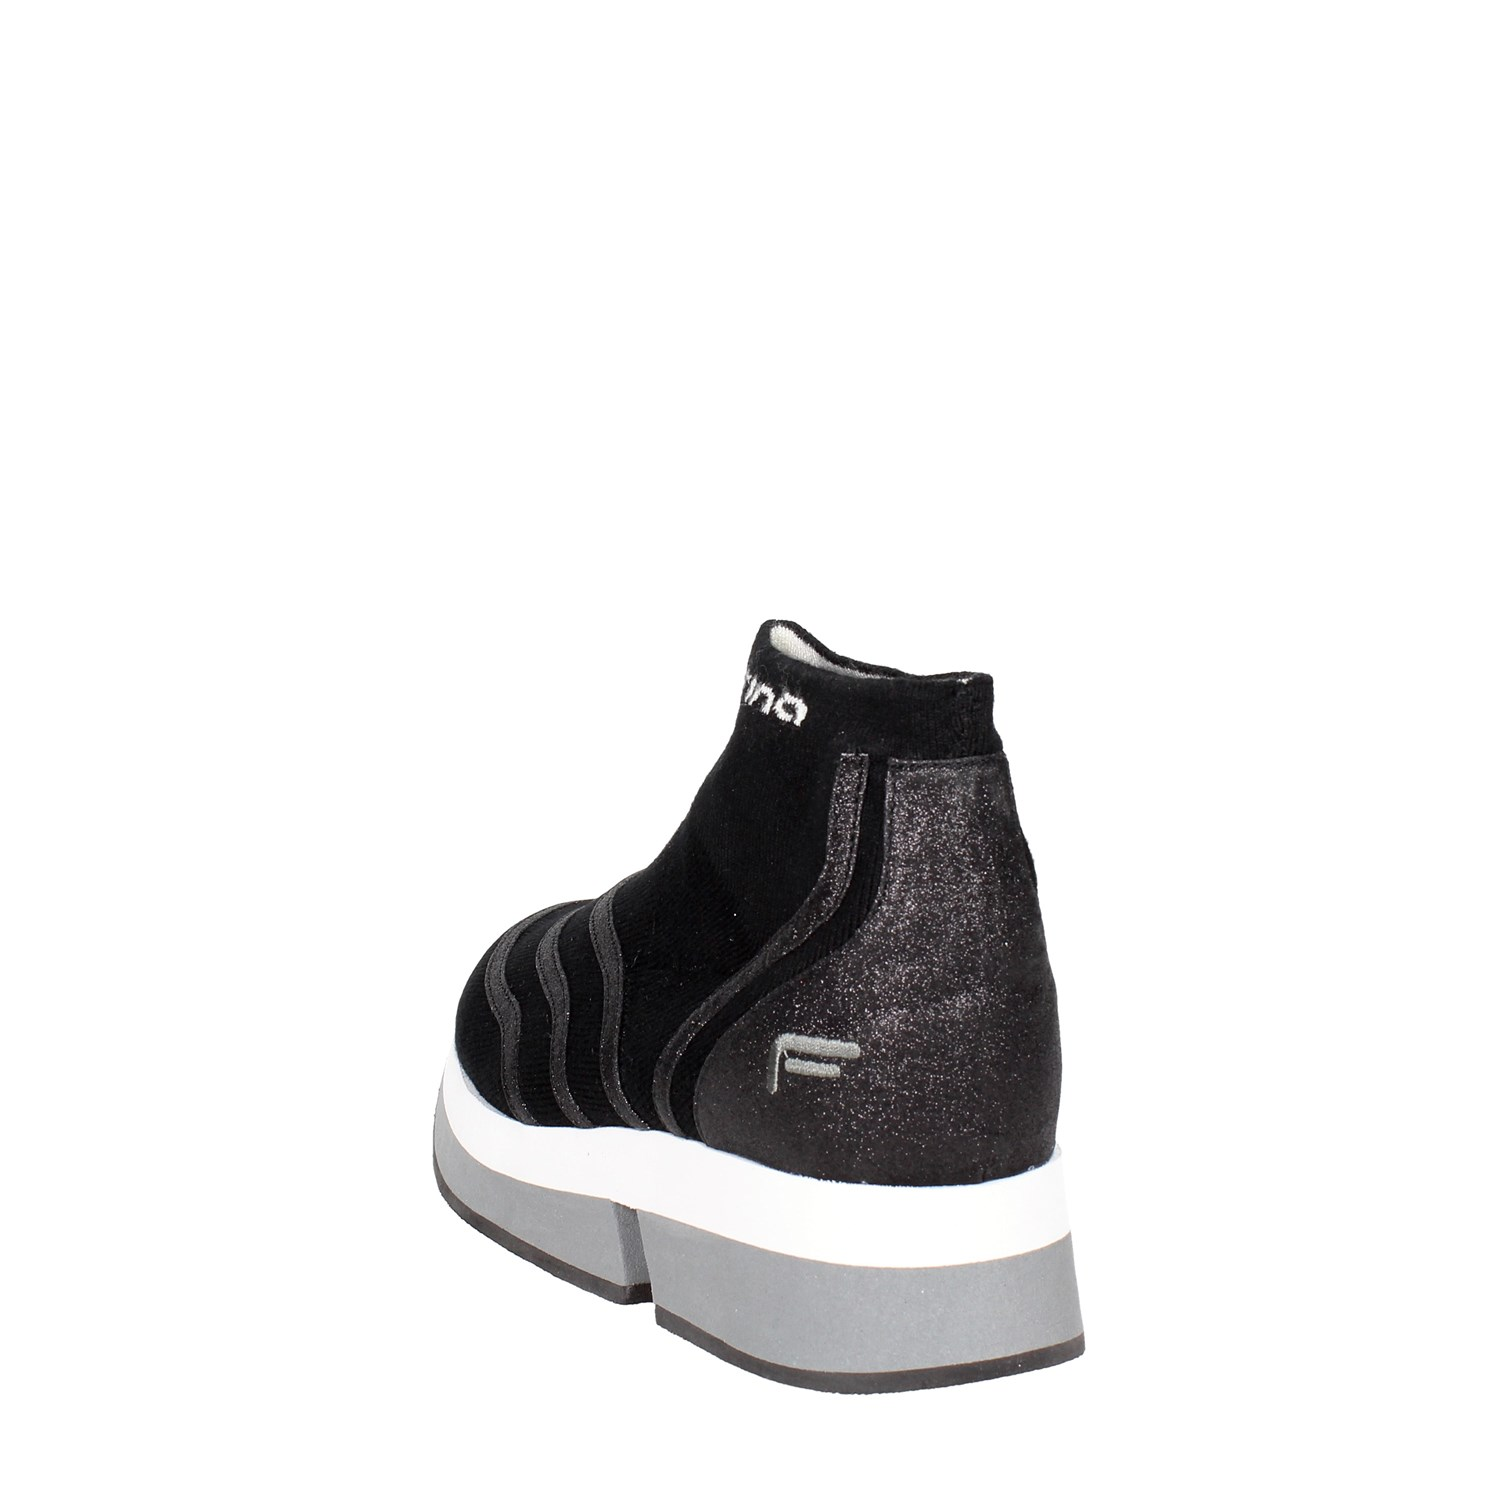 new style 78d3f ada0f Details about Hoch Sneakers Damen Fornarina PI18SL1077J000 Herbst/Winter